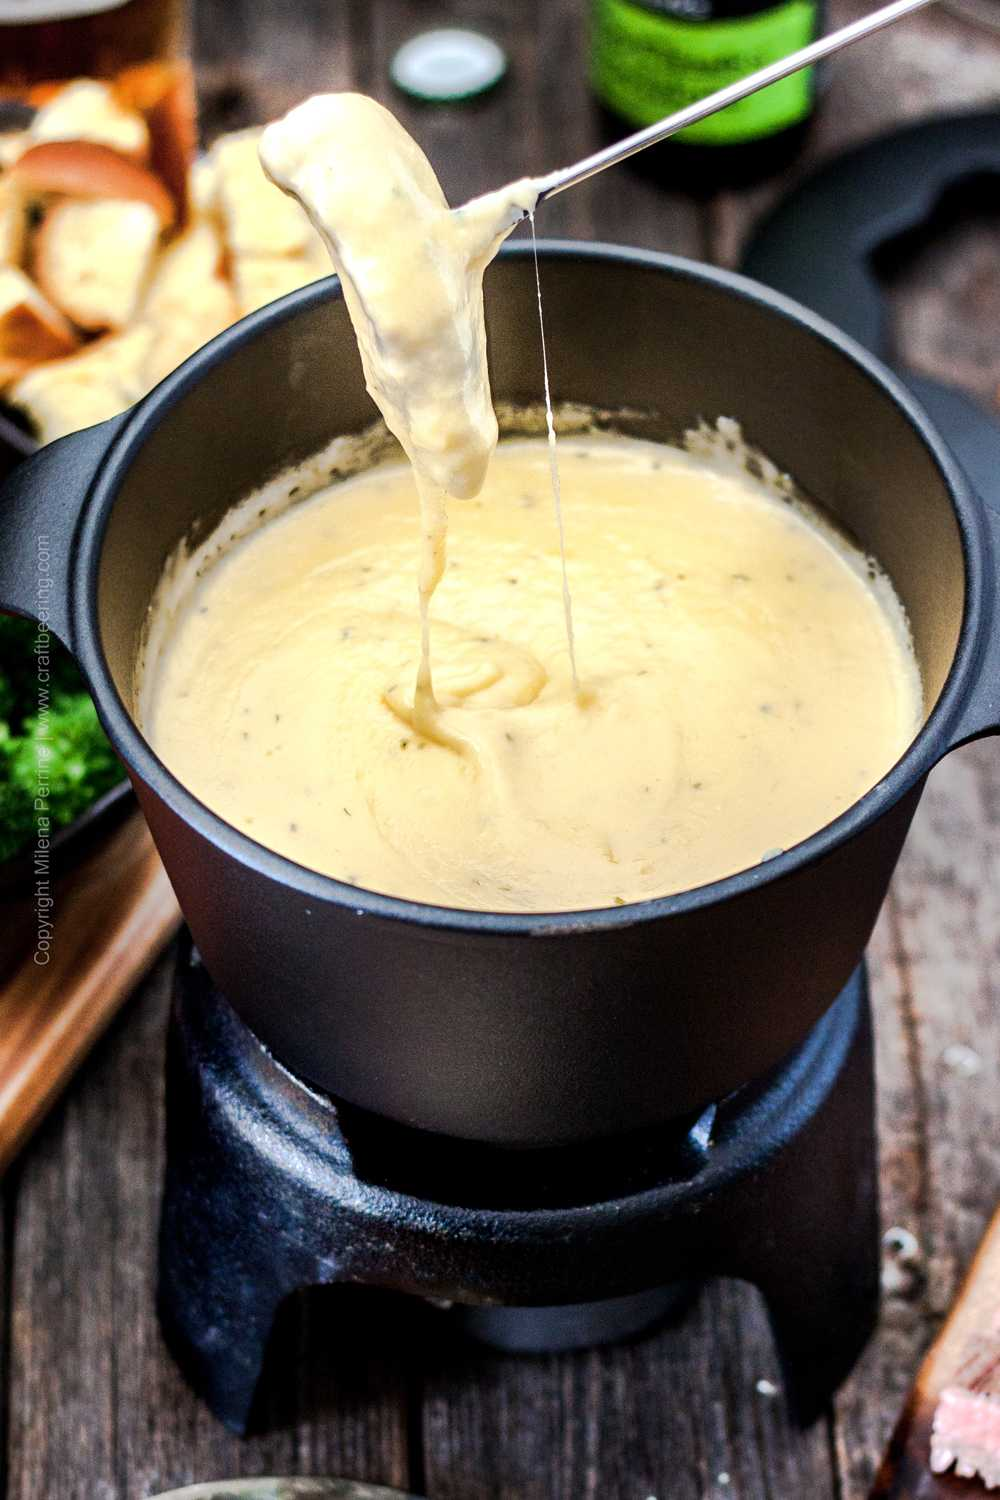 Steak and bread cube being dipped in beer cheese sauce in fondue pot